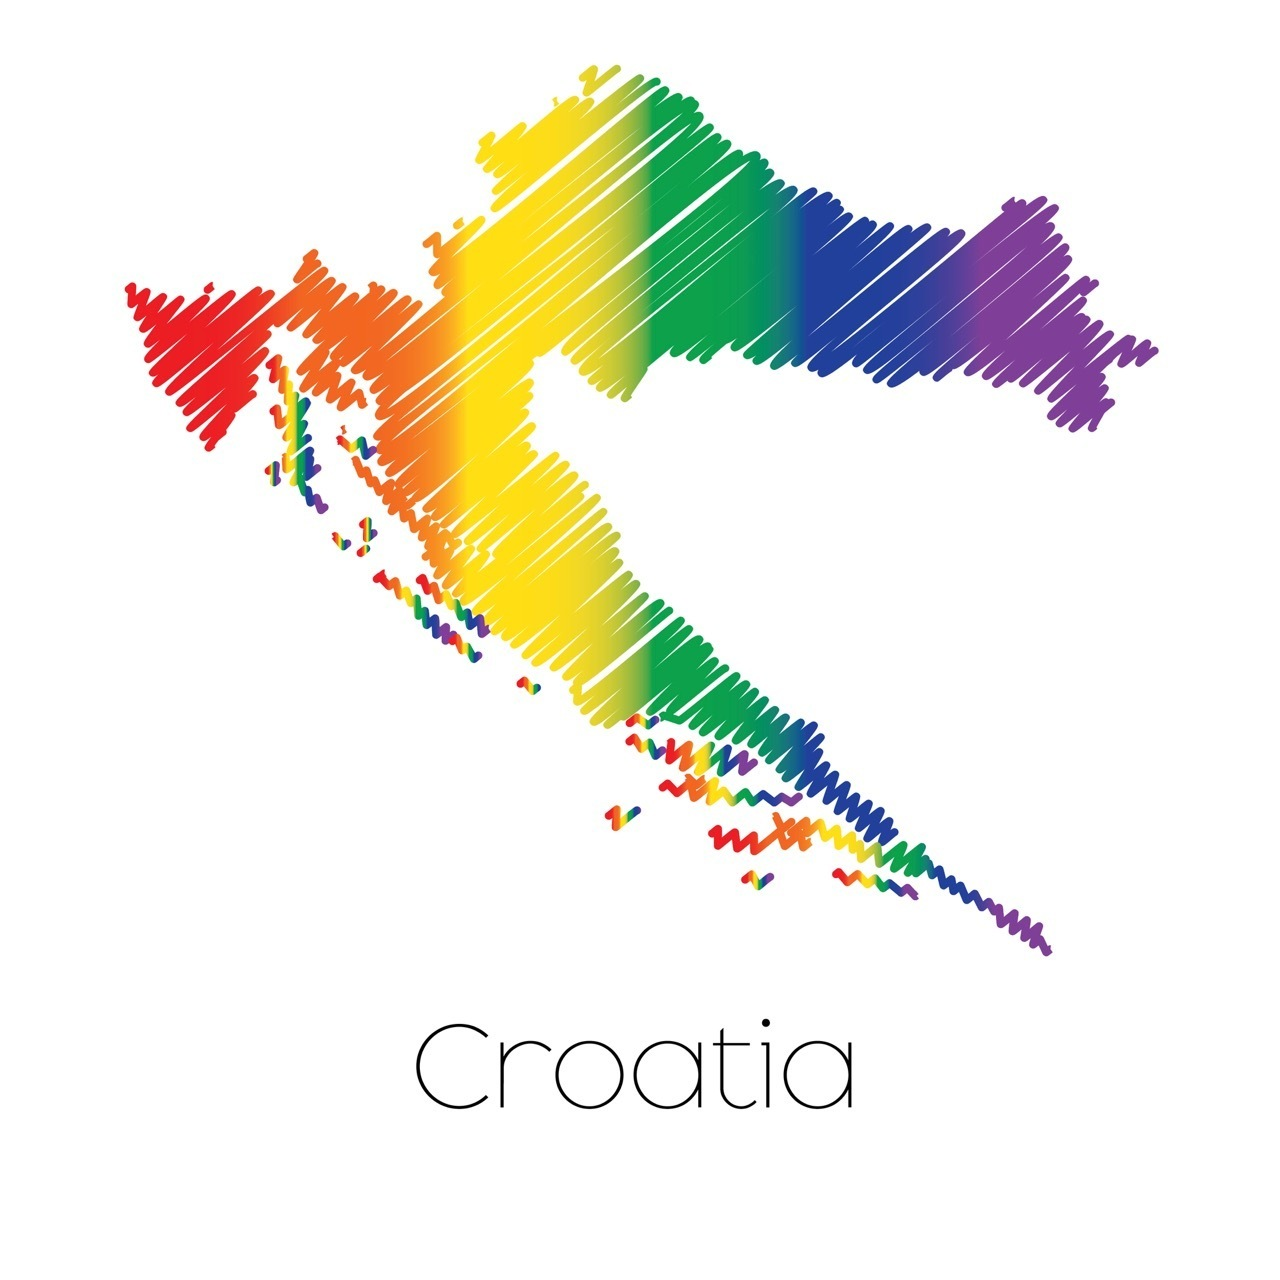 LGBT Coloured Scribbled Shape of the Country of Croatia